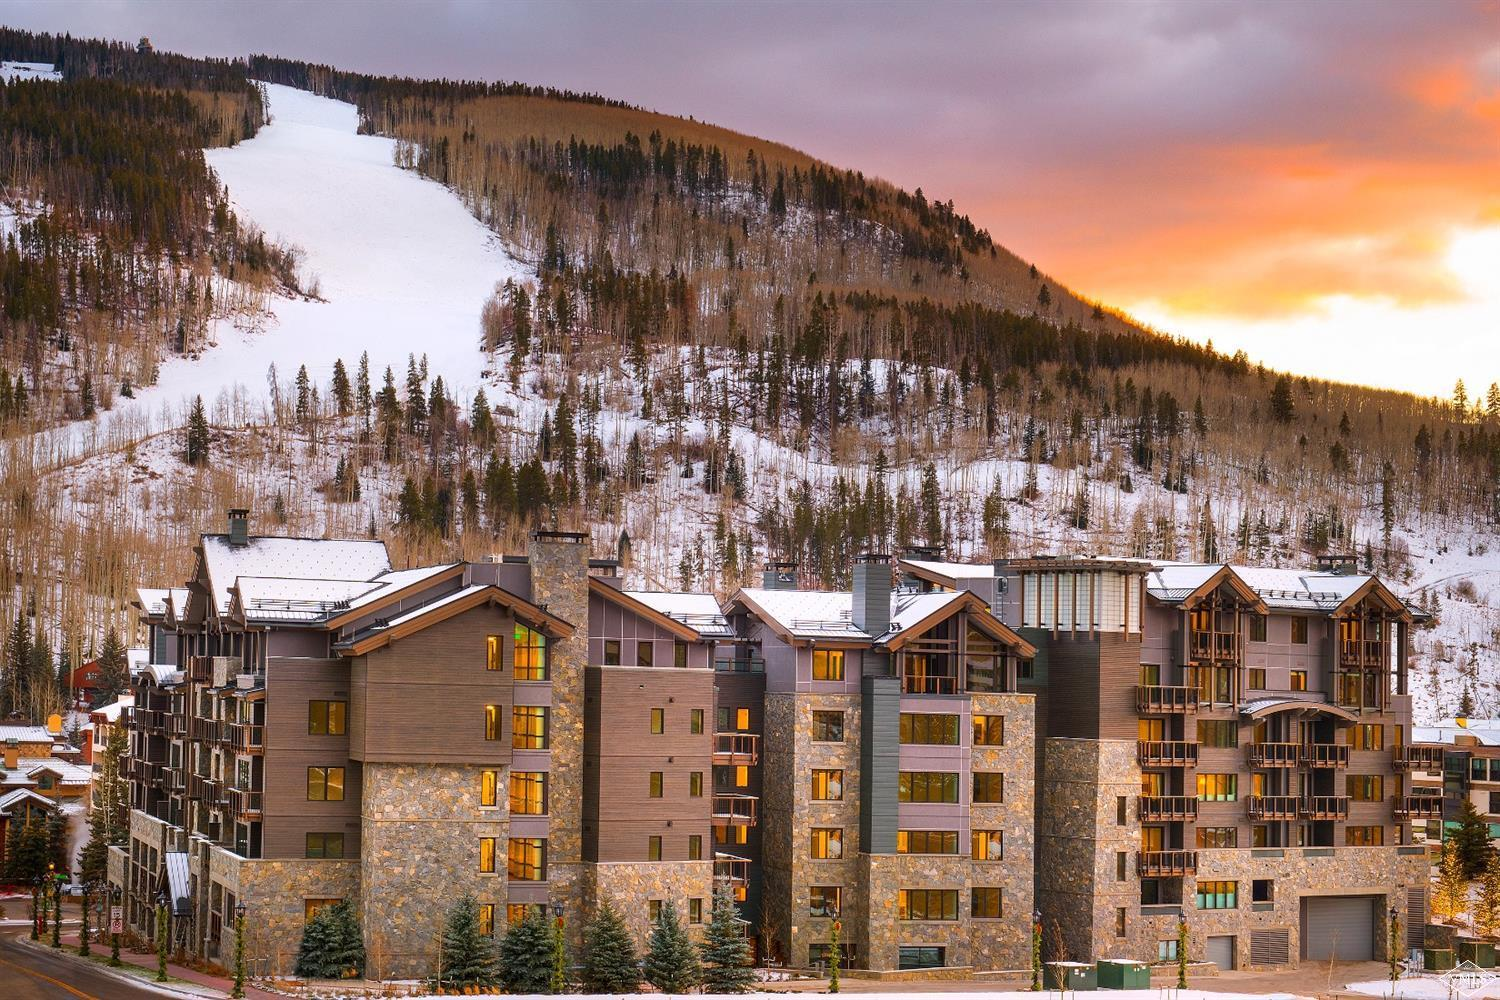 This large south-facing premium 2-bedroom corner residence offers commanding Vail Mountain views. One of the larger two bedrooms available, and includes a third bath to accommodate additional guests. Luxury amenities include ski concierge, infinite-current lap pool, fitness center, and on-site management.